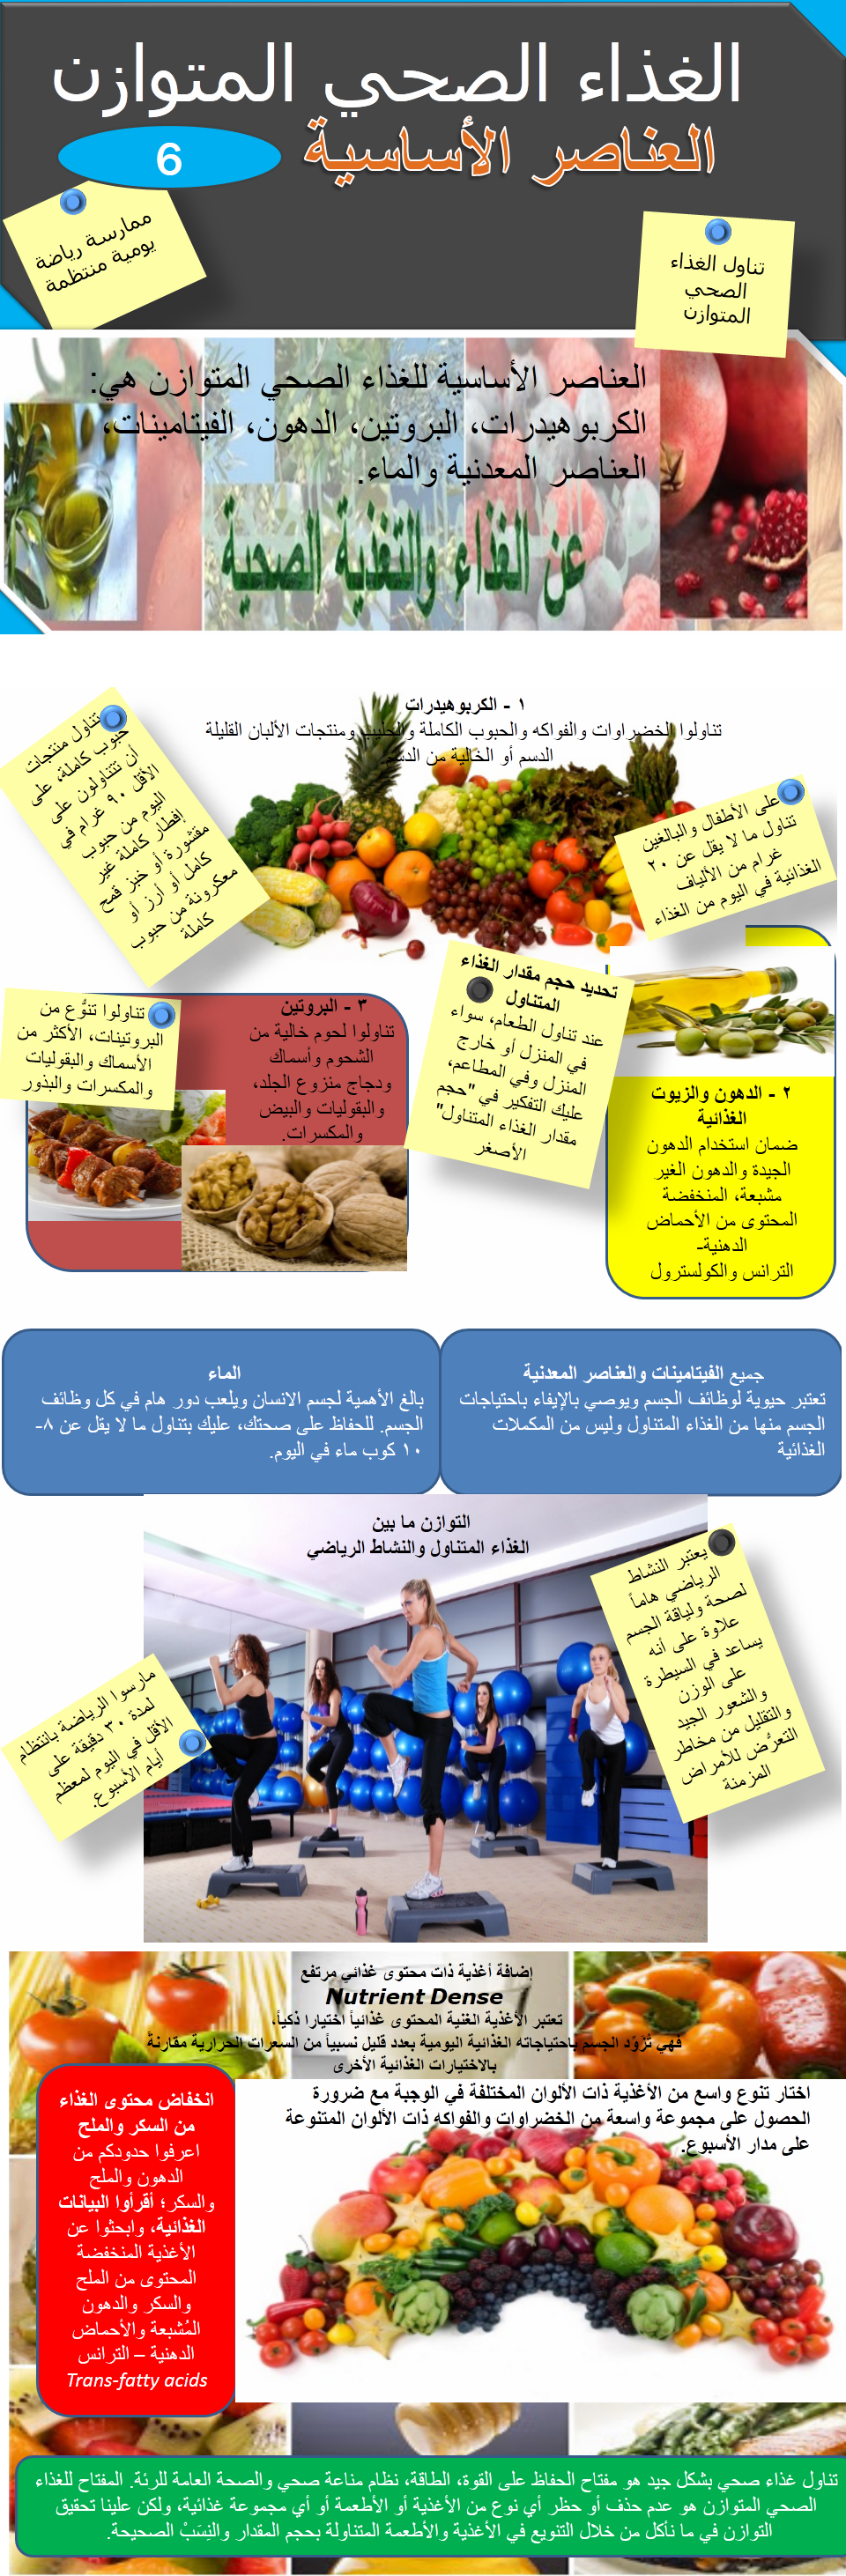 الغذاء الصحي المتوازن Healthy Balanced Diet My First Infographics In Arabic Healthy Balanced Diet Healthy Balance Balanced Diet